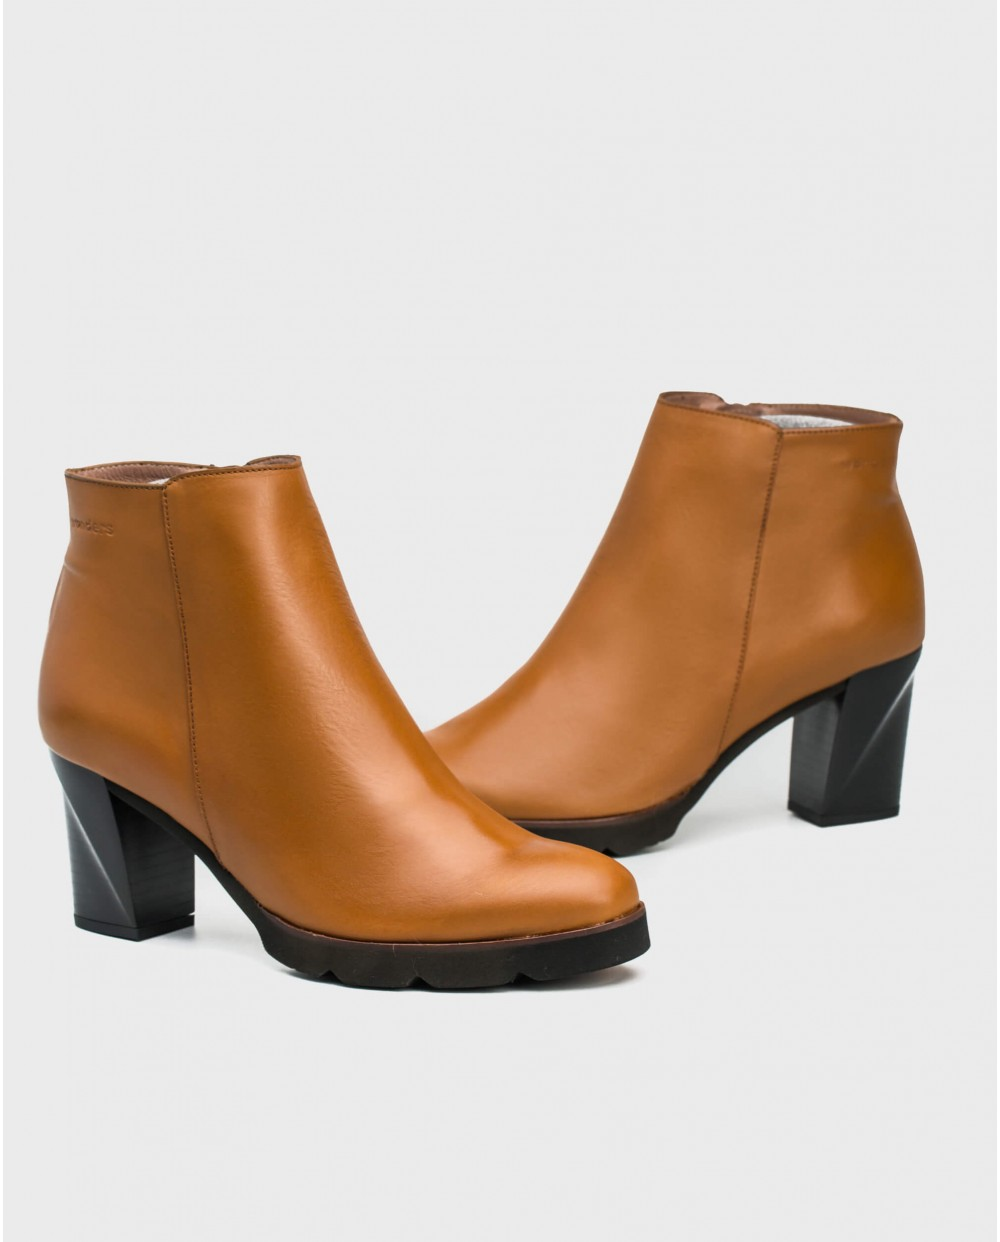 Wonders-Ankle Boots-High heeled leather ankle boot